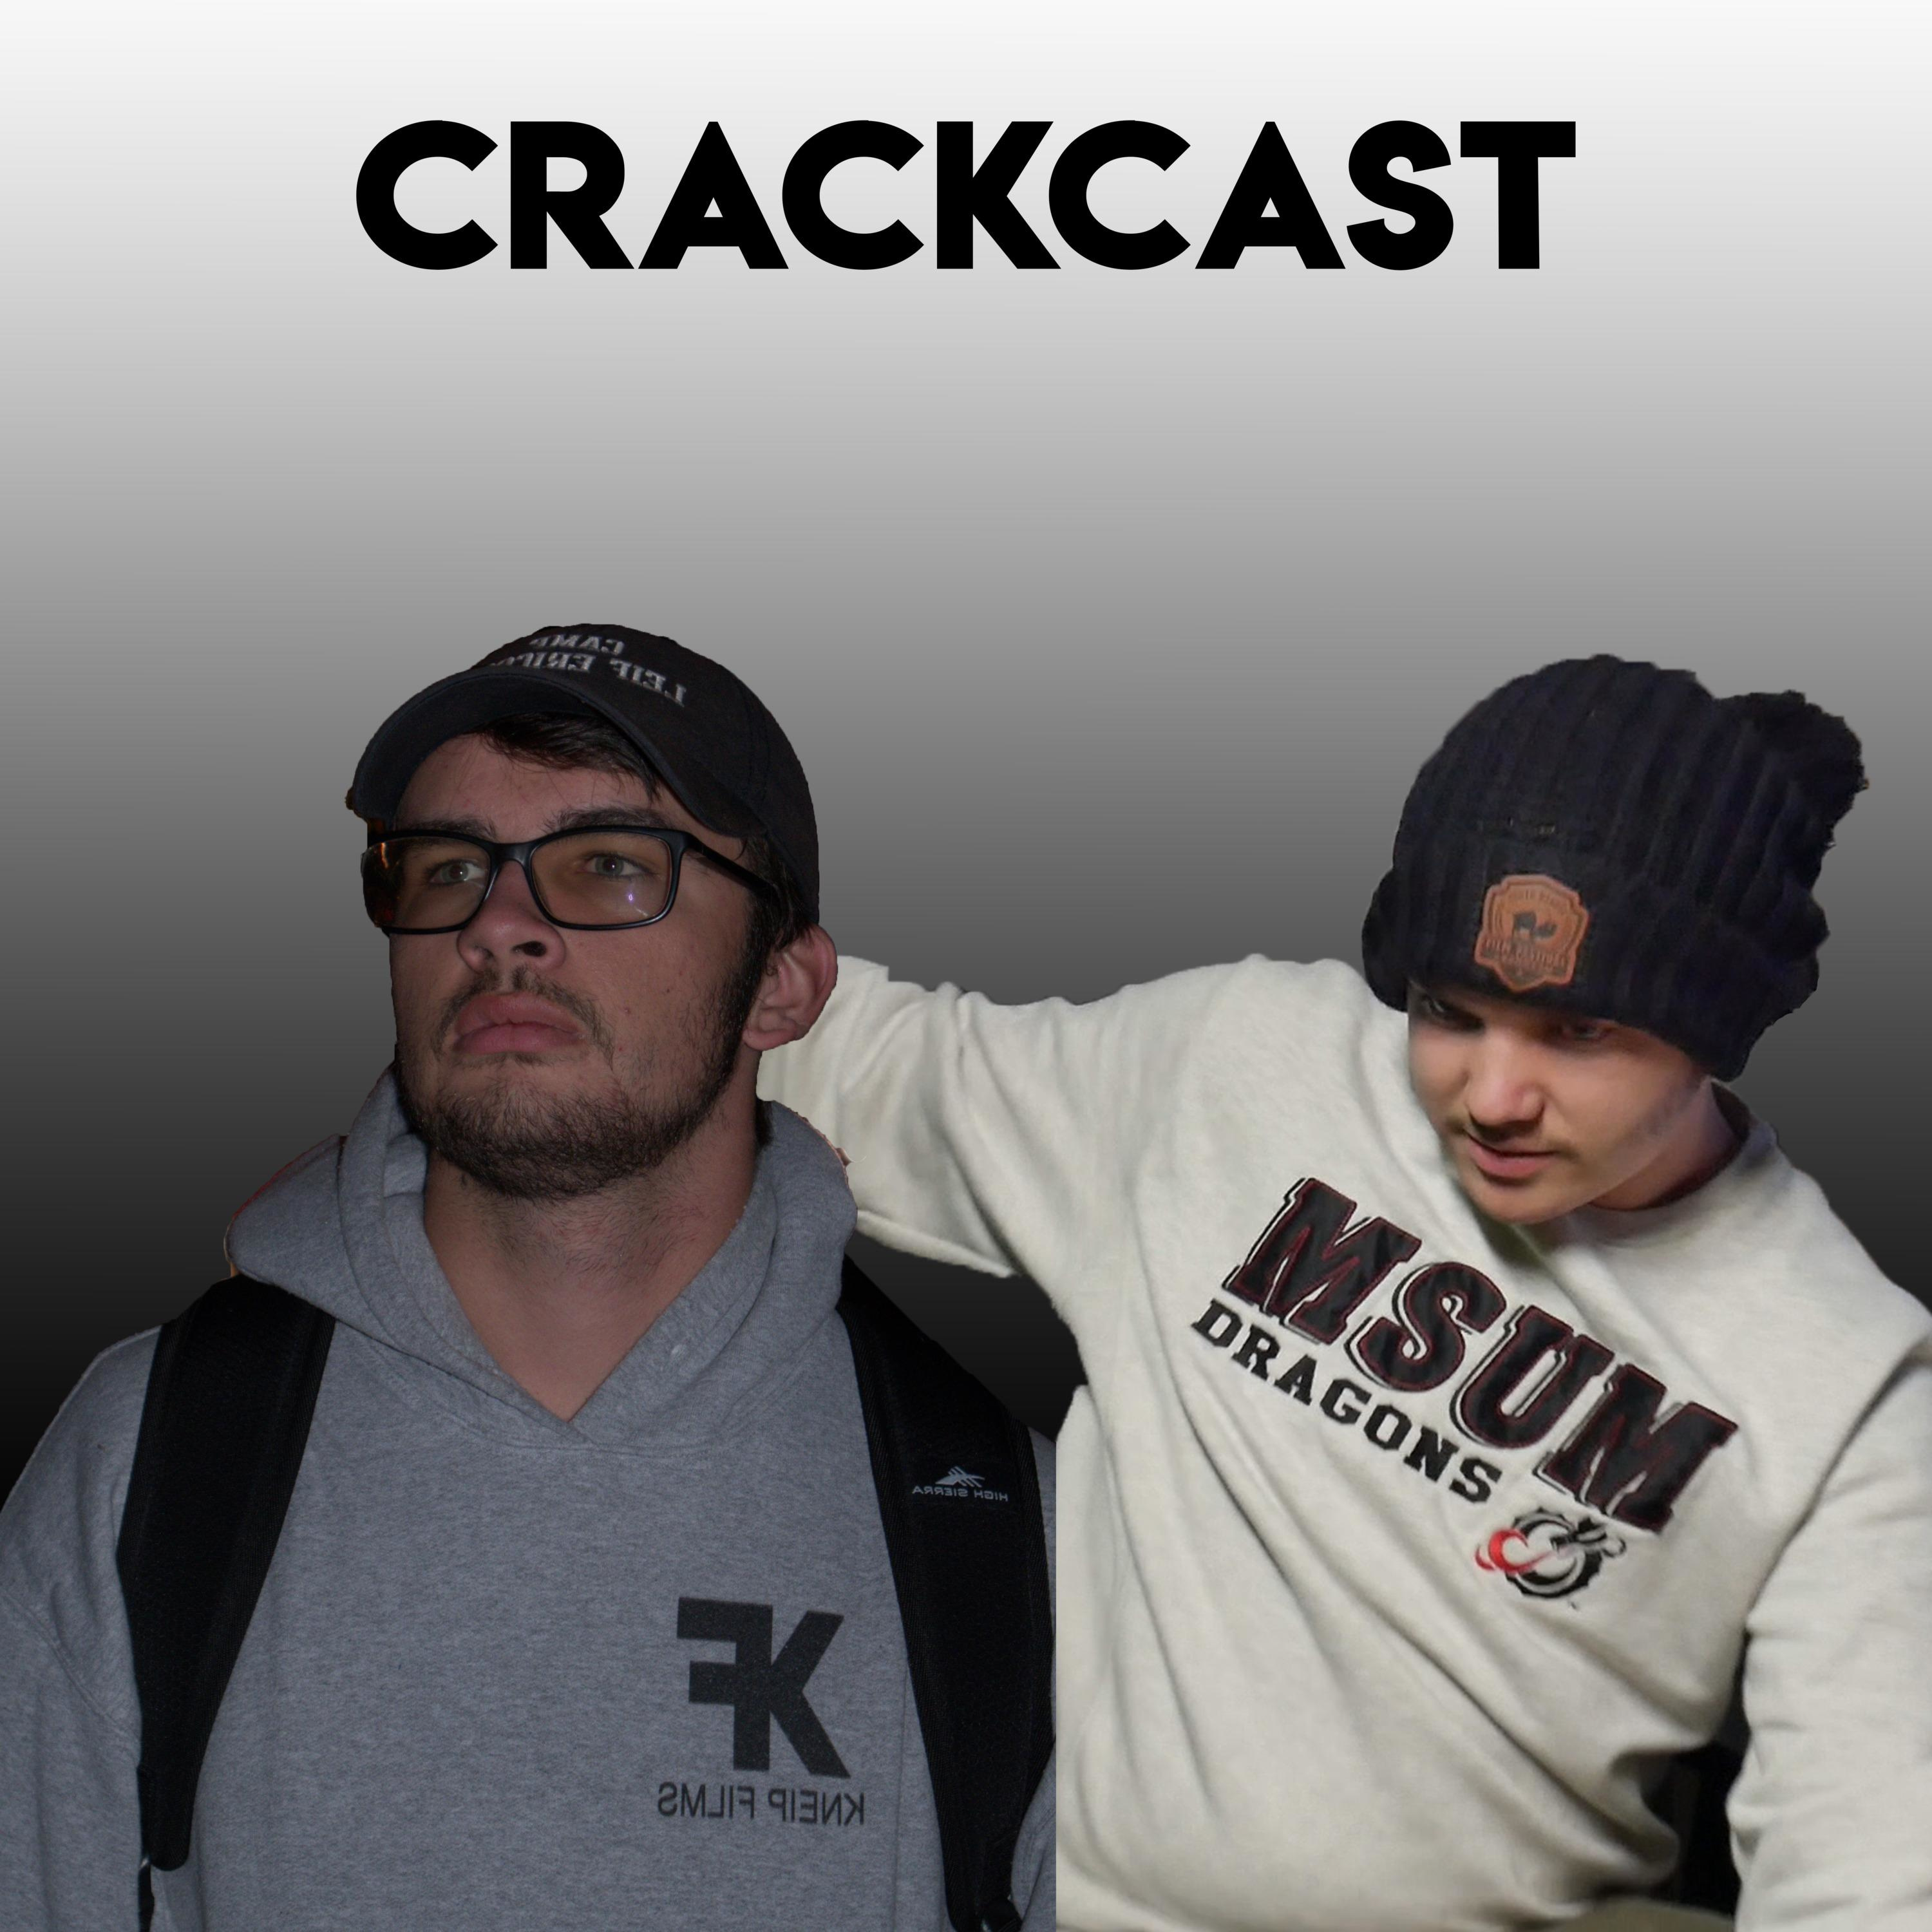 Crackcast Episode 6 | Ice Machines and Train Riders